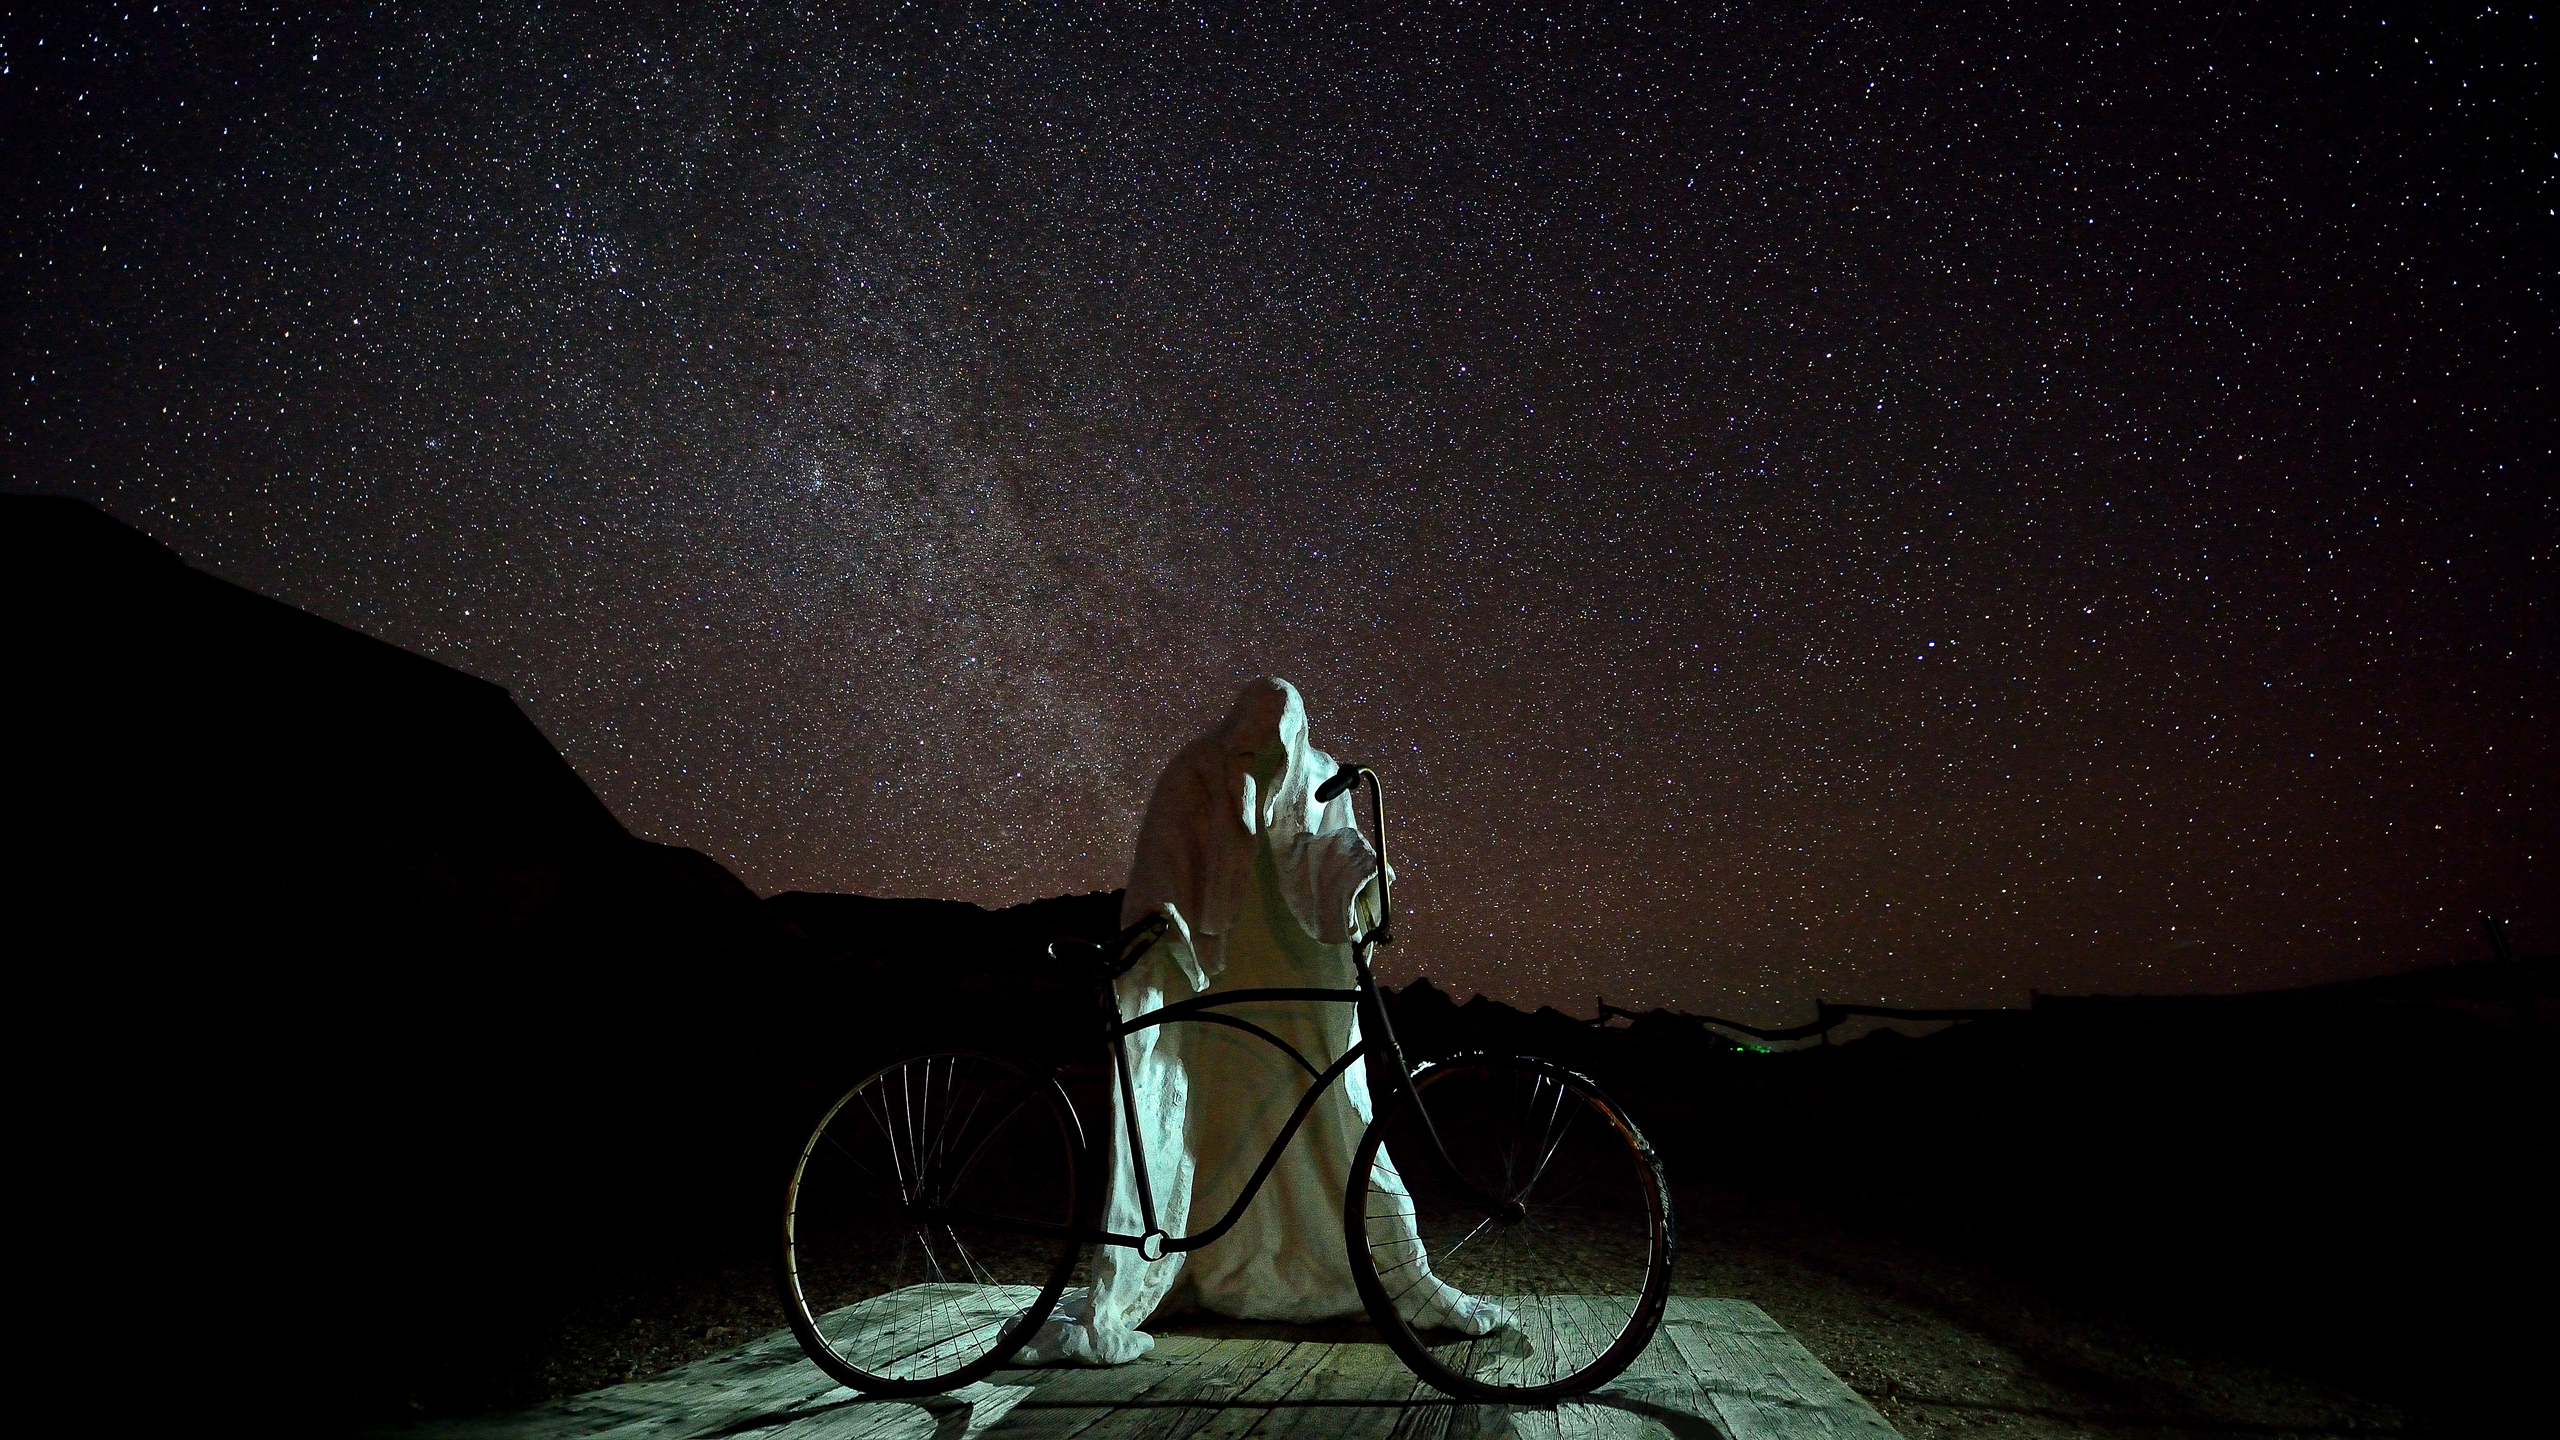 5666_kenlee_2017-03-23_2119_deathvalley15sf24iso4000__goldwell-museum_rhyolite-bicycle-ghost-SRGB-300DPI-PHOTOFOCUS HEADER 2560x1440px